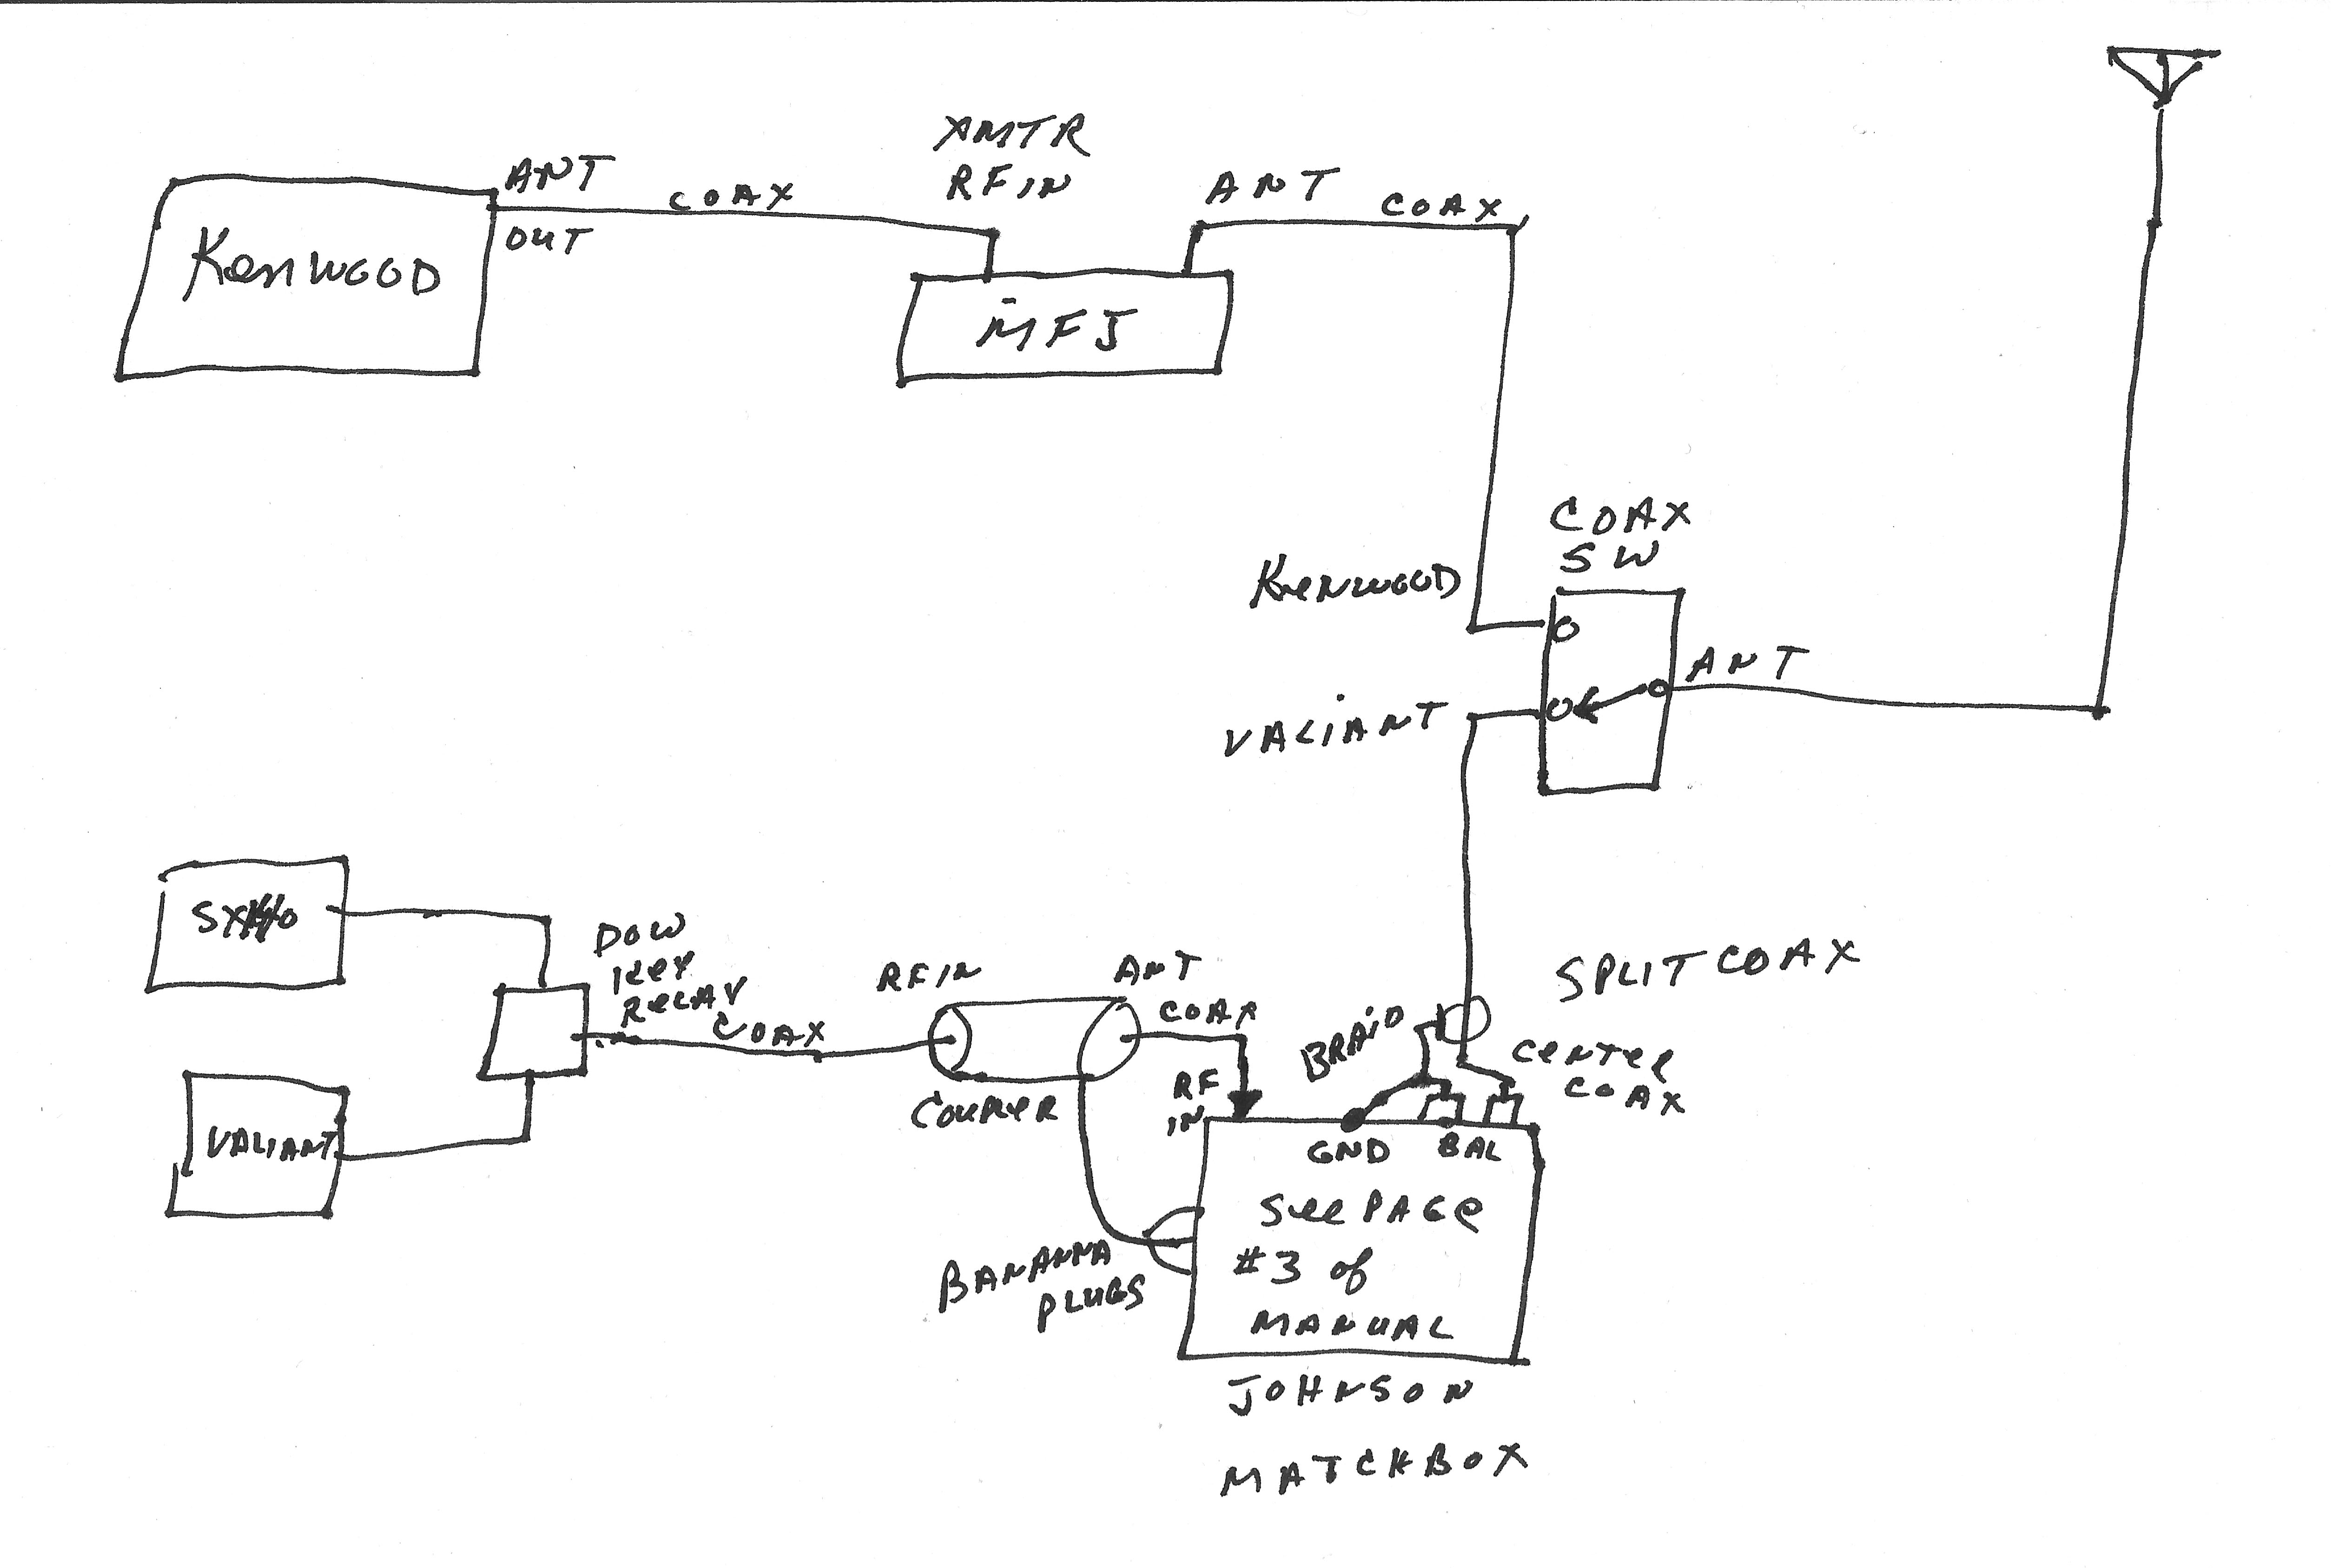 viking range wiring diagram Collection-Hook up Schematic for N2AWA shack 20-g